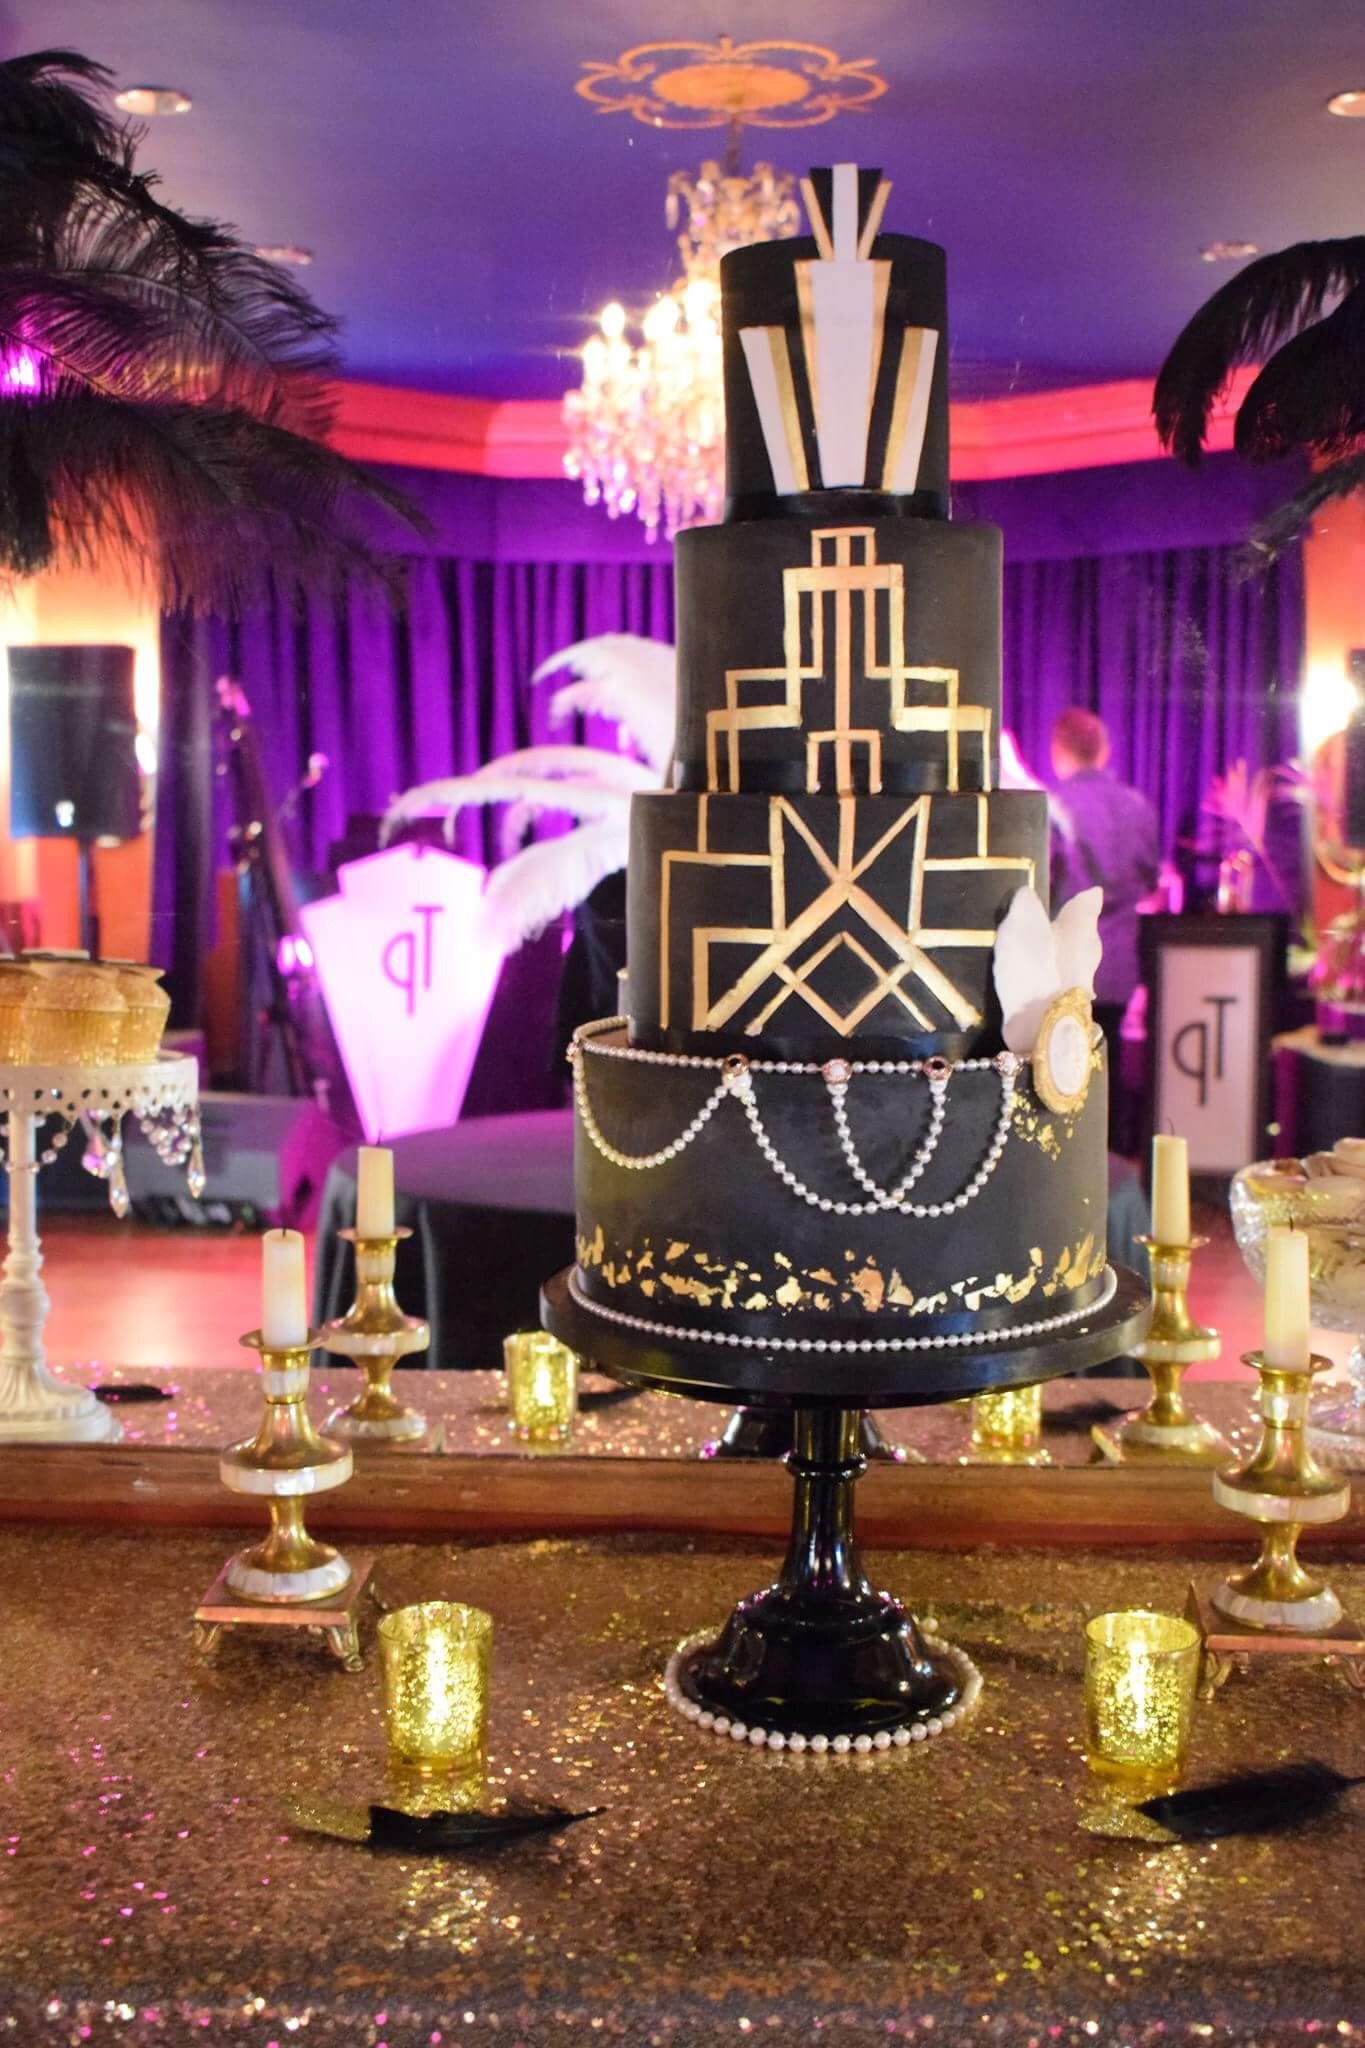 1920s wedding decoration ideas  Gatsby Party by SB Events eventsplanning  Fiesta decor